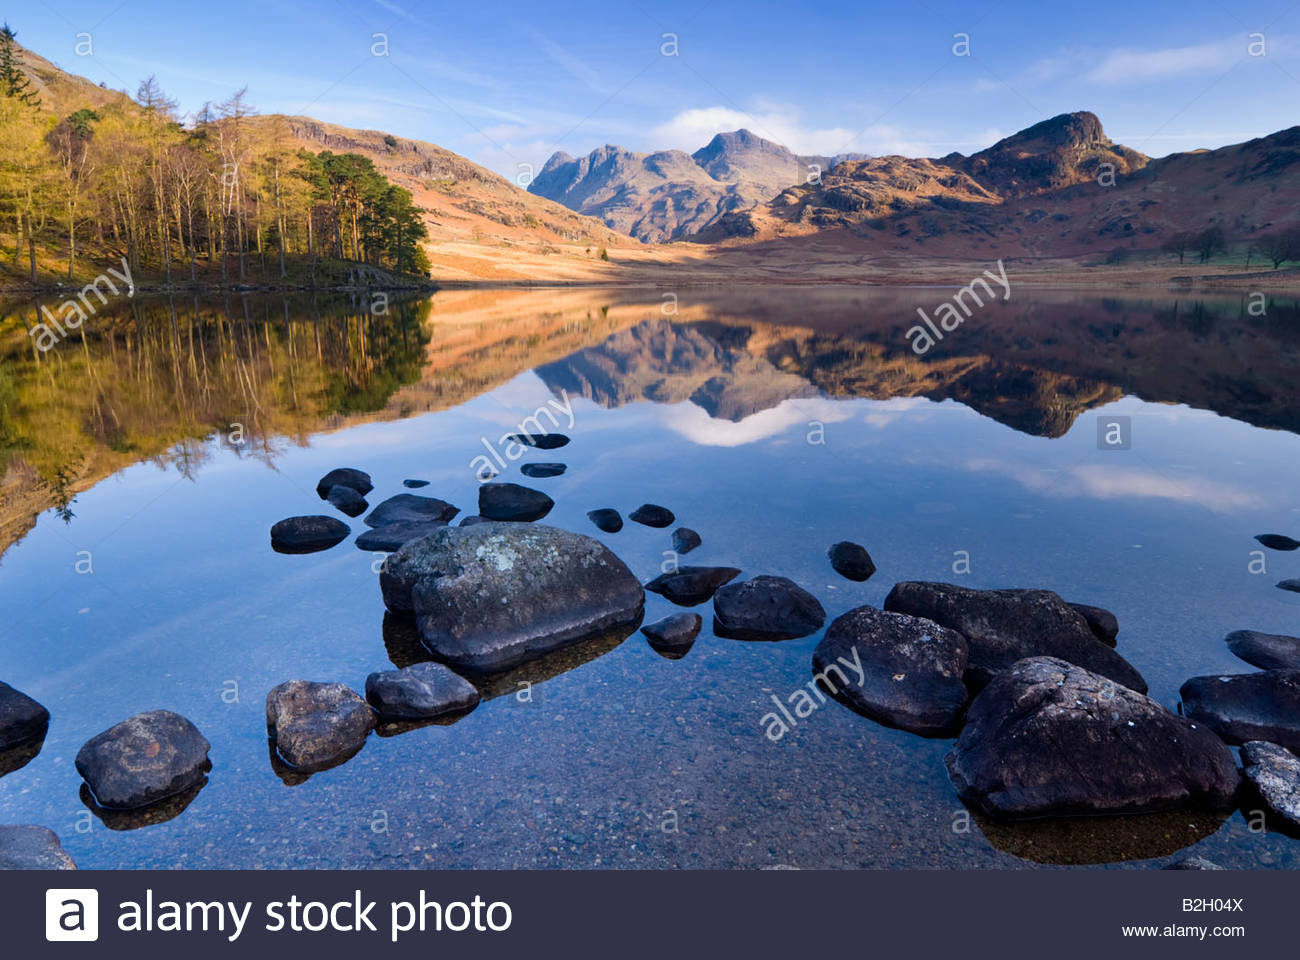 The Langdale Pikes reflected in the waters of Blea Tarn, Lake District National Park, Cumbria, England, UK. - Stock Image